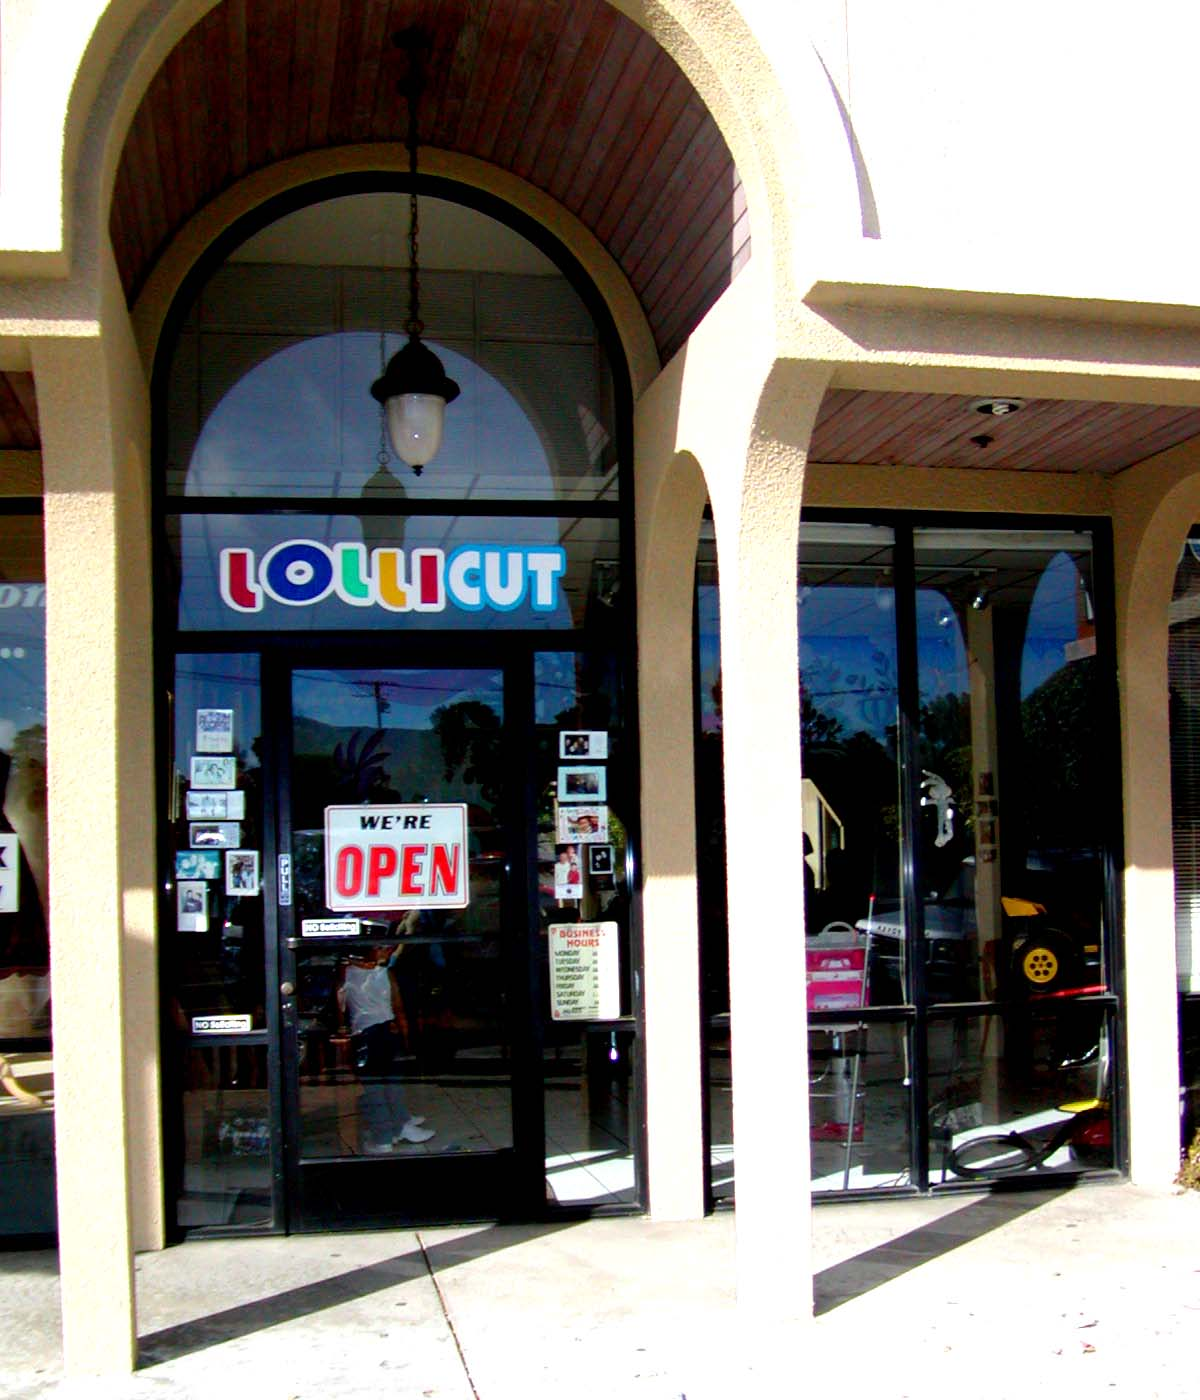 Best Hair Salon In The Conroe Tx Area: Lollicut Is Known For The Best Children's Haircut In The